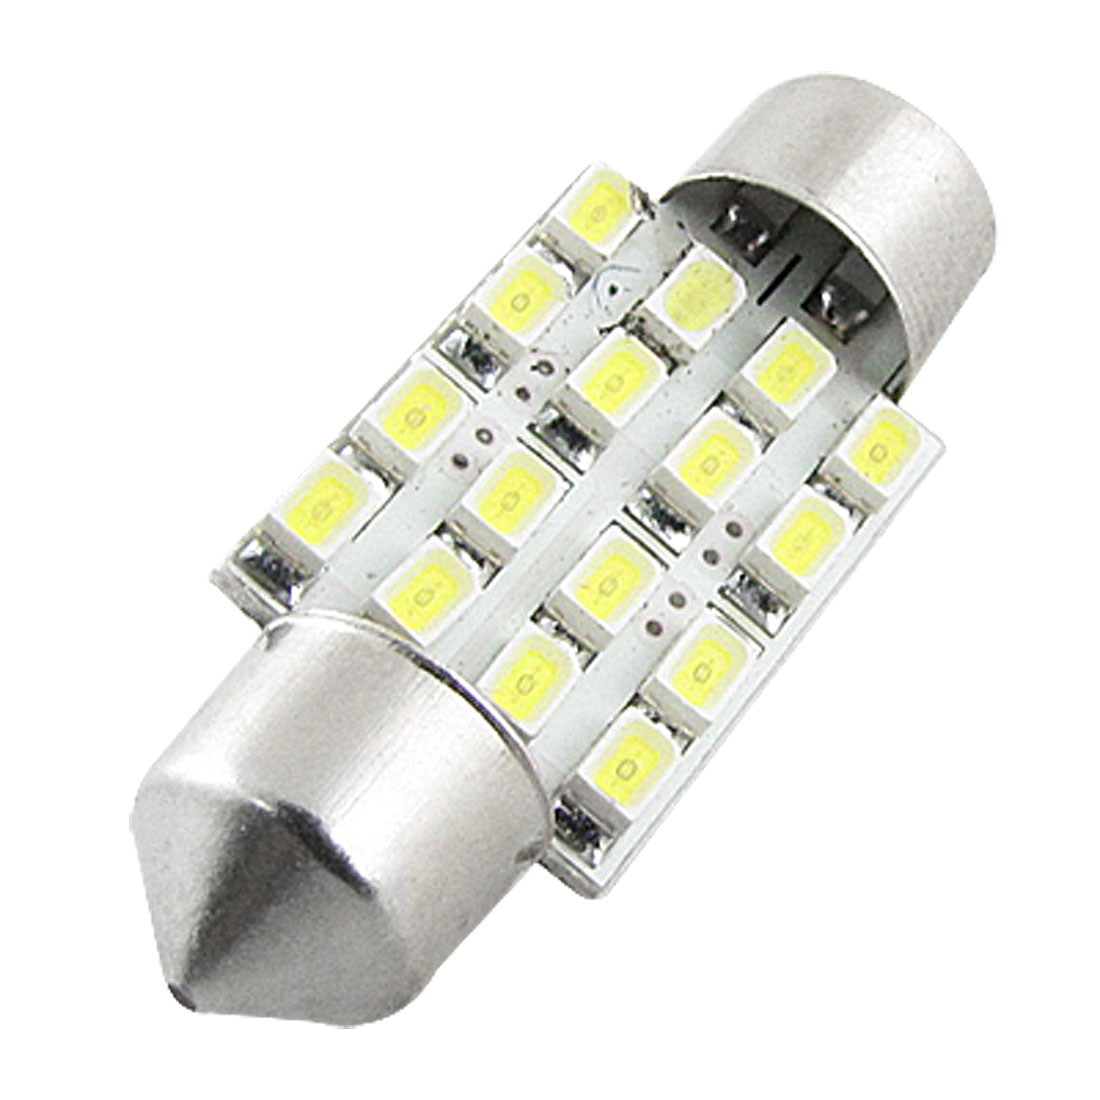 Auto Car 39mm White 1210 SMD 16 LED Interior Festoon Dome Map Light Bulb